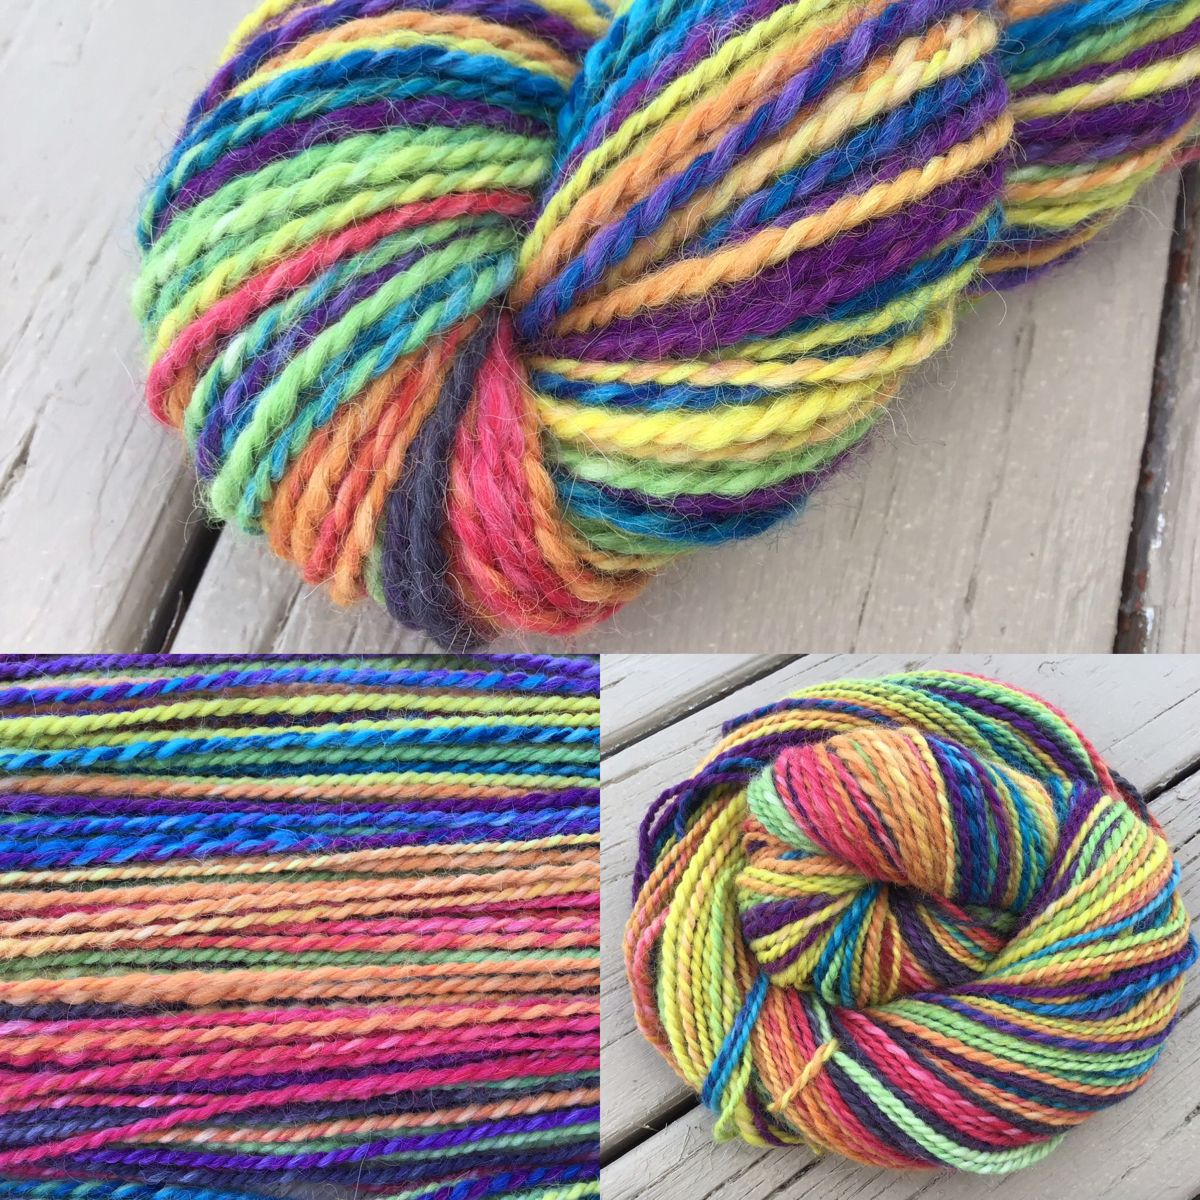 We spun this one up from our rainbow brite roving.  Baby alpaca is super soft and has a gorgeous halo when it's worked up!    #thefiberimp #handspunyarn #alpacayarn #rainbowyarn